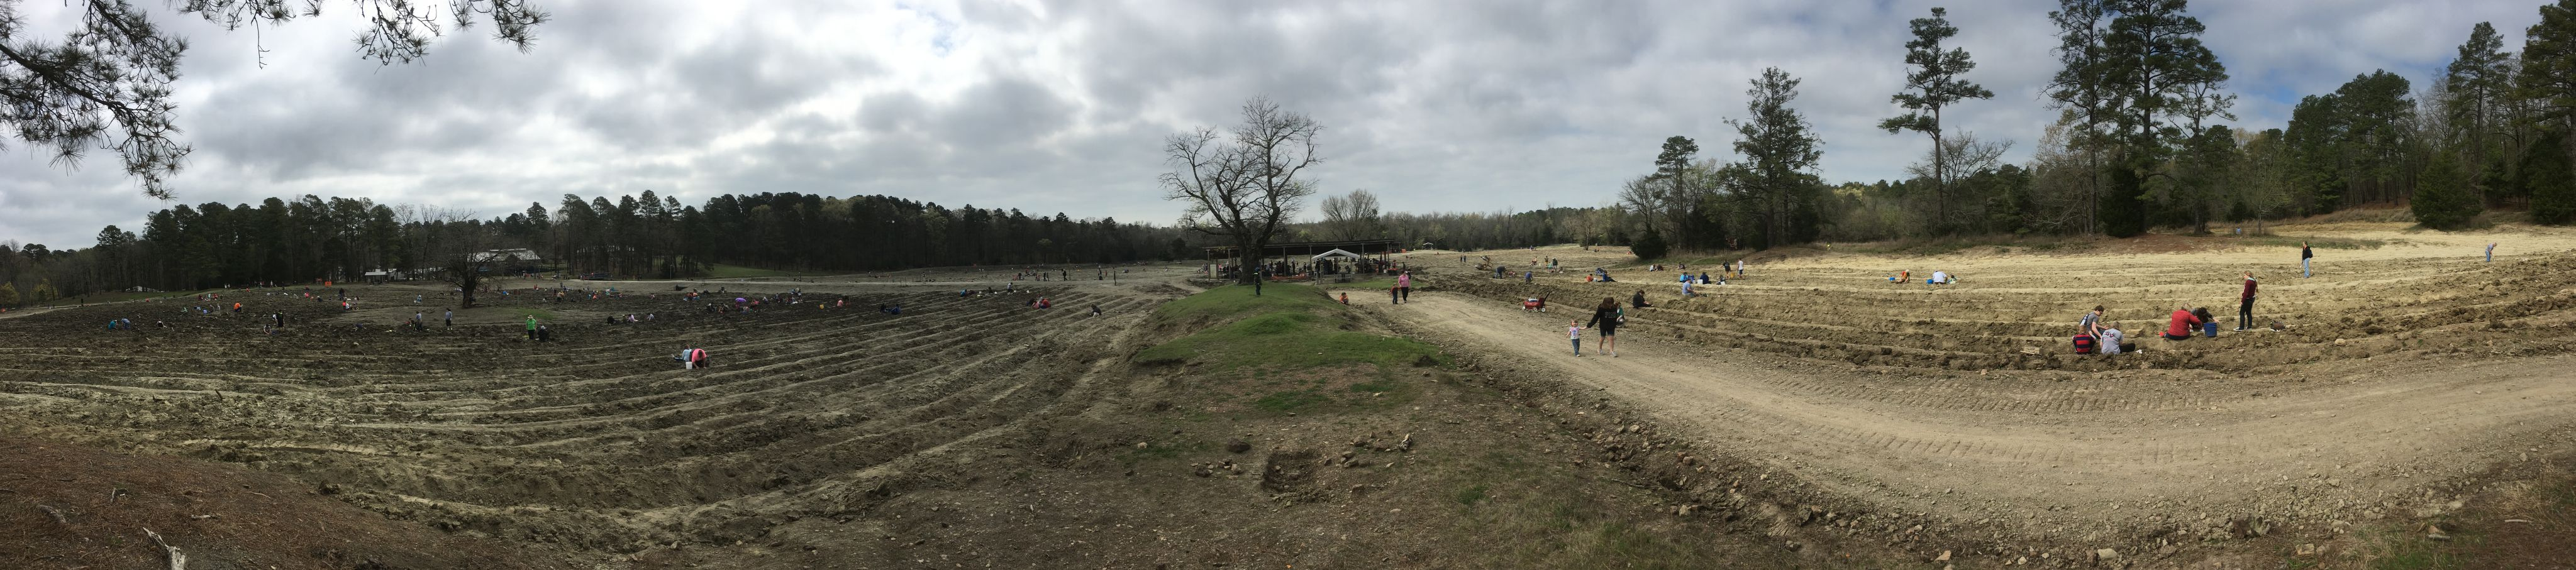 Crater of Diamonds Panorama